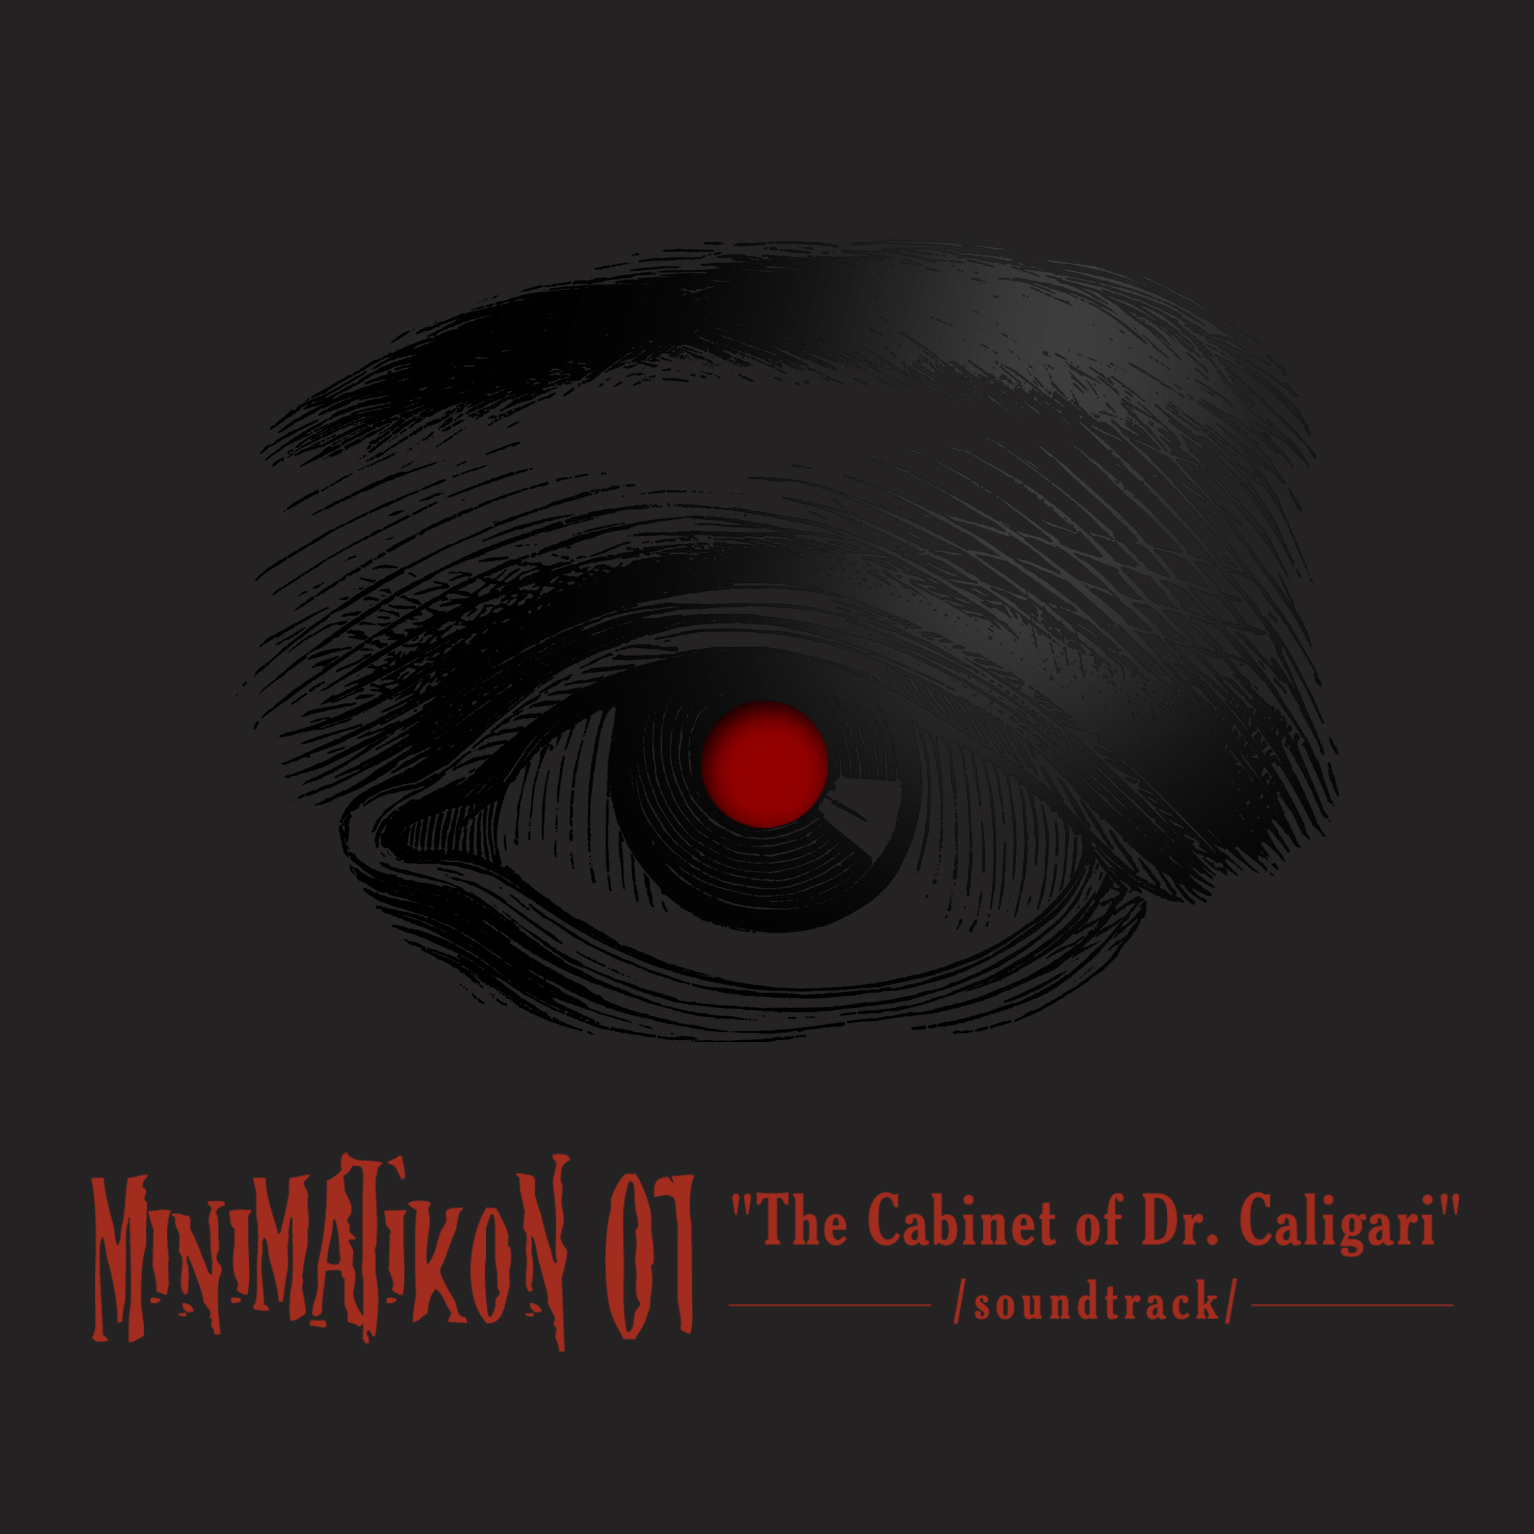 cabinet of dr caligari plot segmentation While many contemporary audiences may not be familiar with robert weine's 1919 masterpiece of german expressionism, the cabinet of dr caligari, the films distorted, nightmarish imagery will be instantly recognisable as a defining feature of the horror film genre, of which it is the first feature length example.